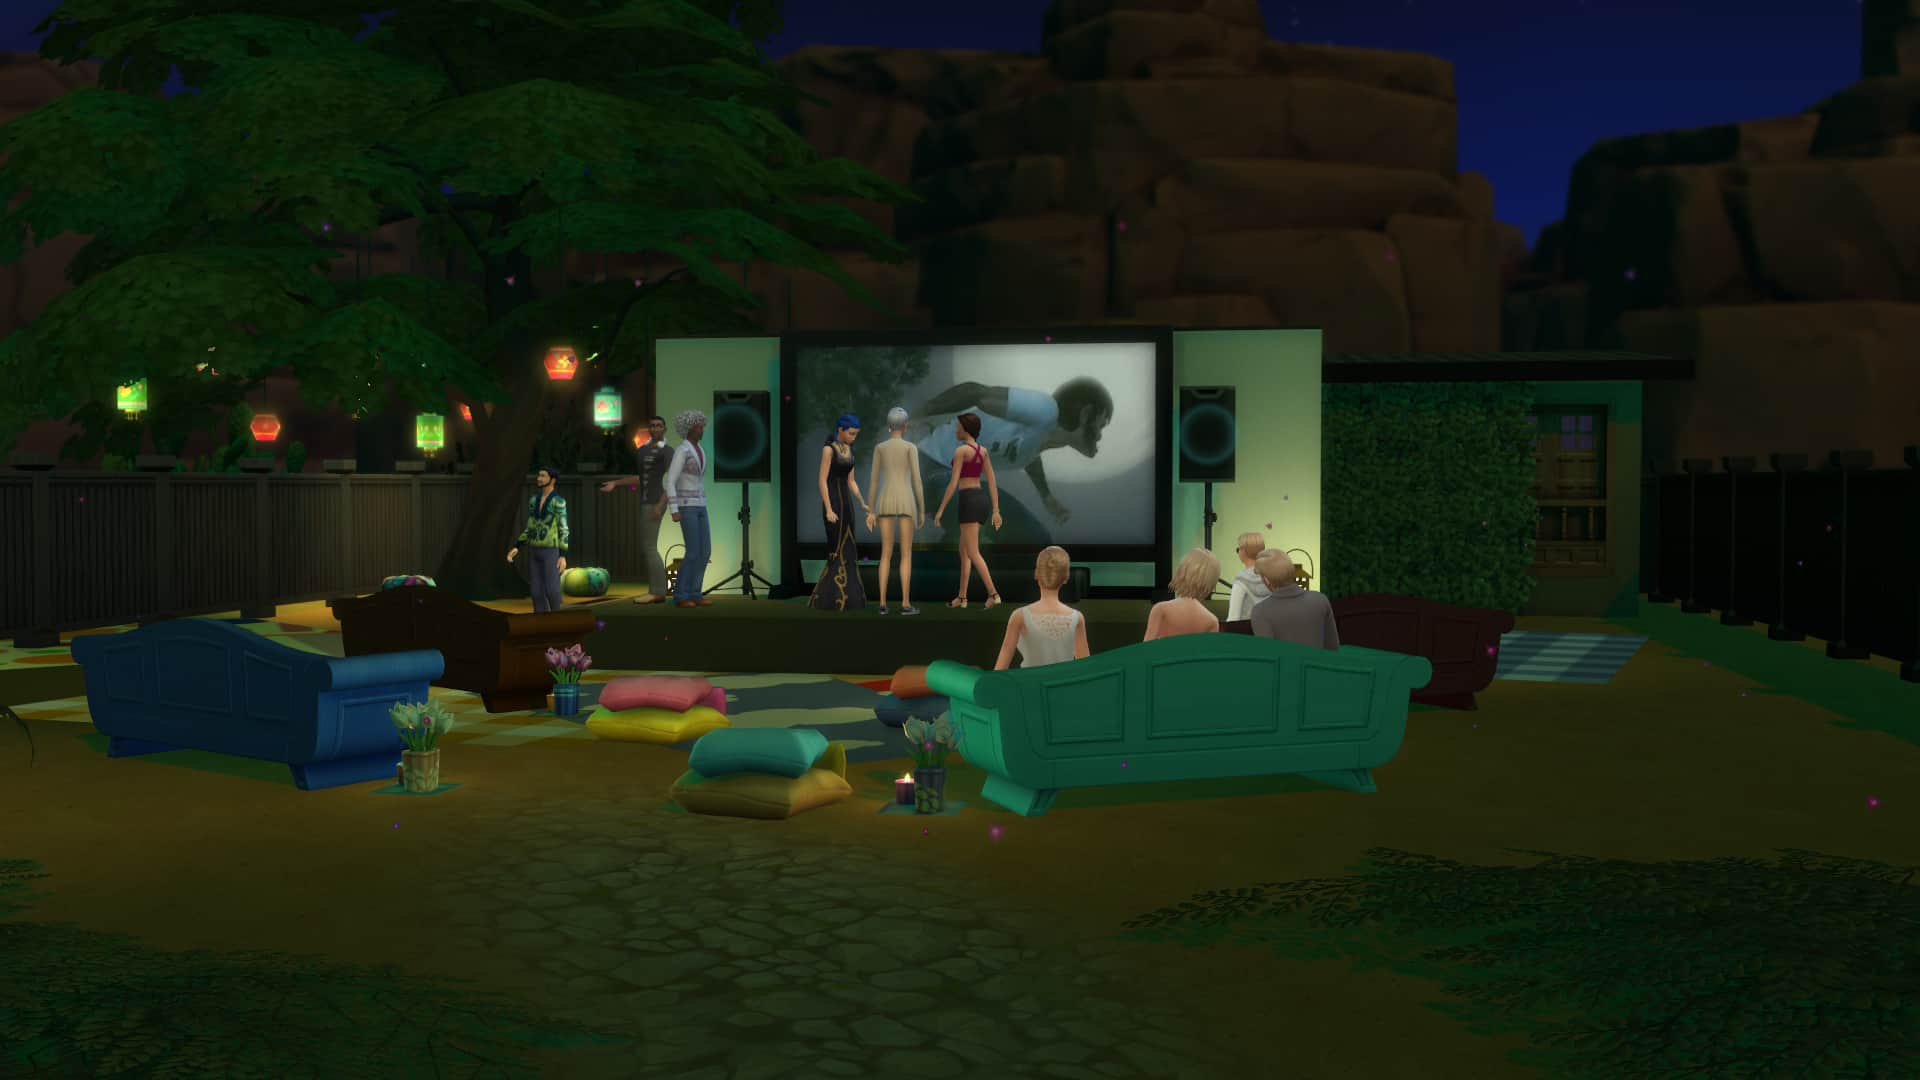 The Sims 4 StrangerVille Free Download - Install-Game